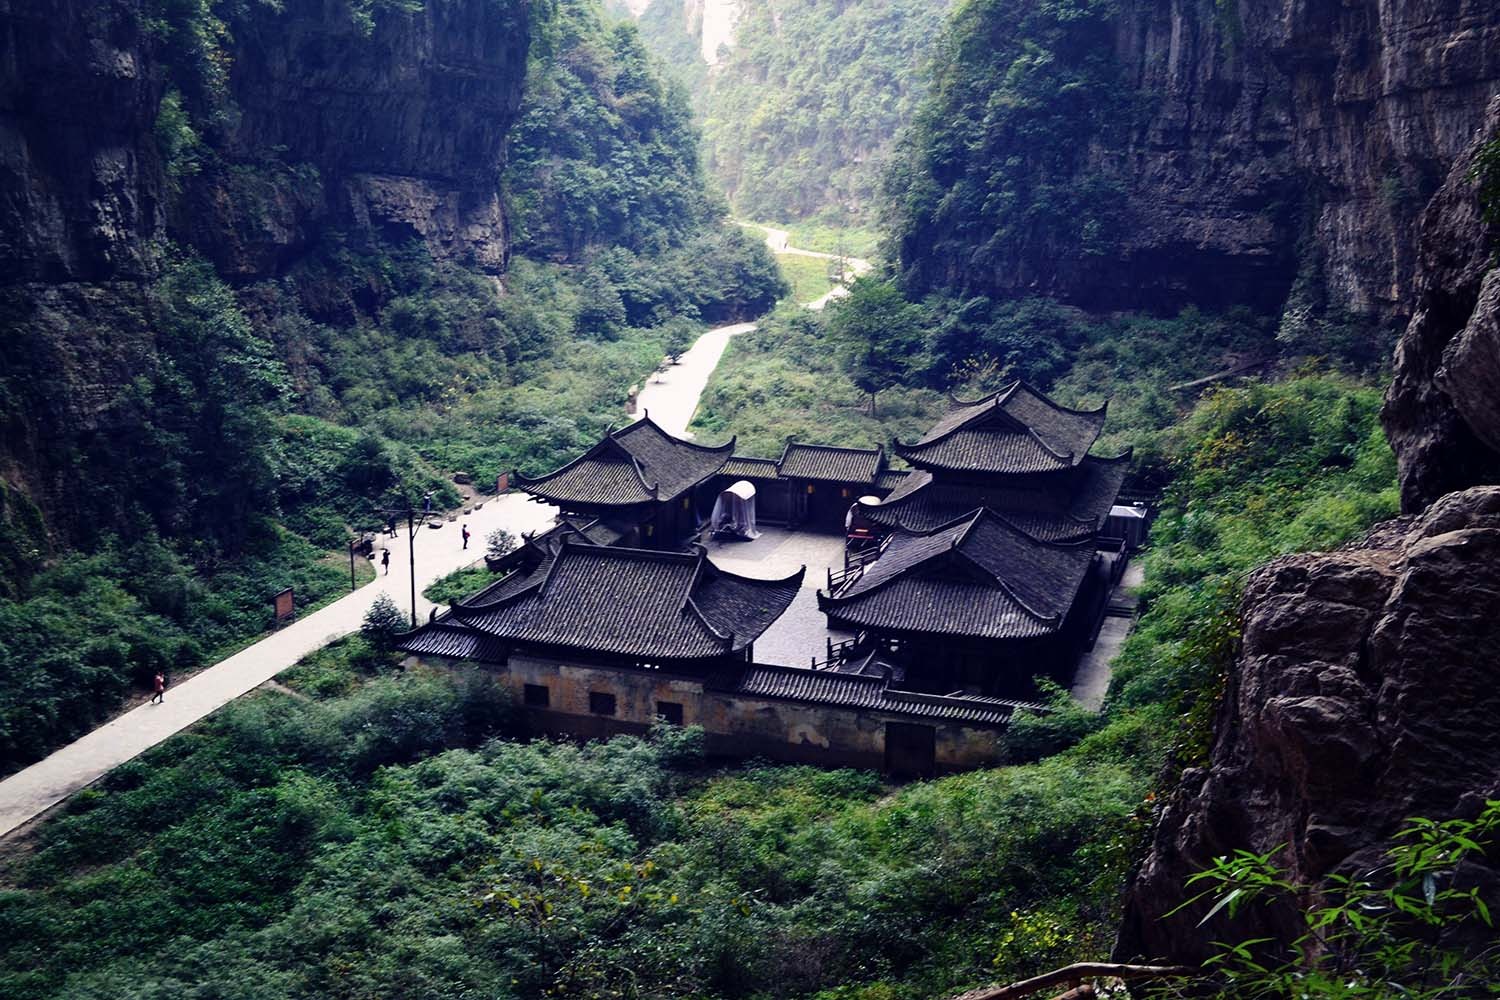 Free Access to Two Wulong Scenic Spots